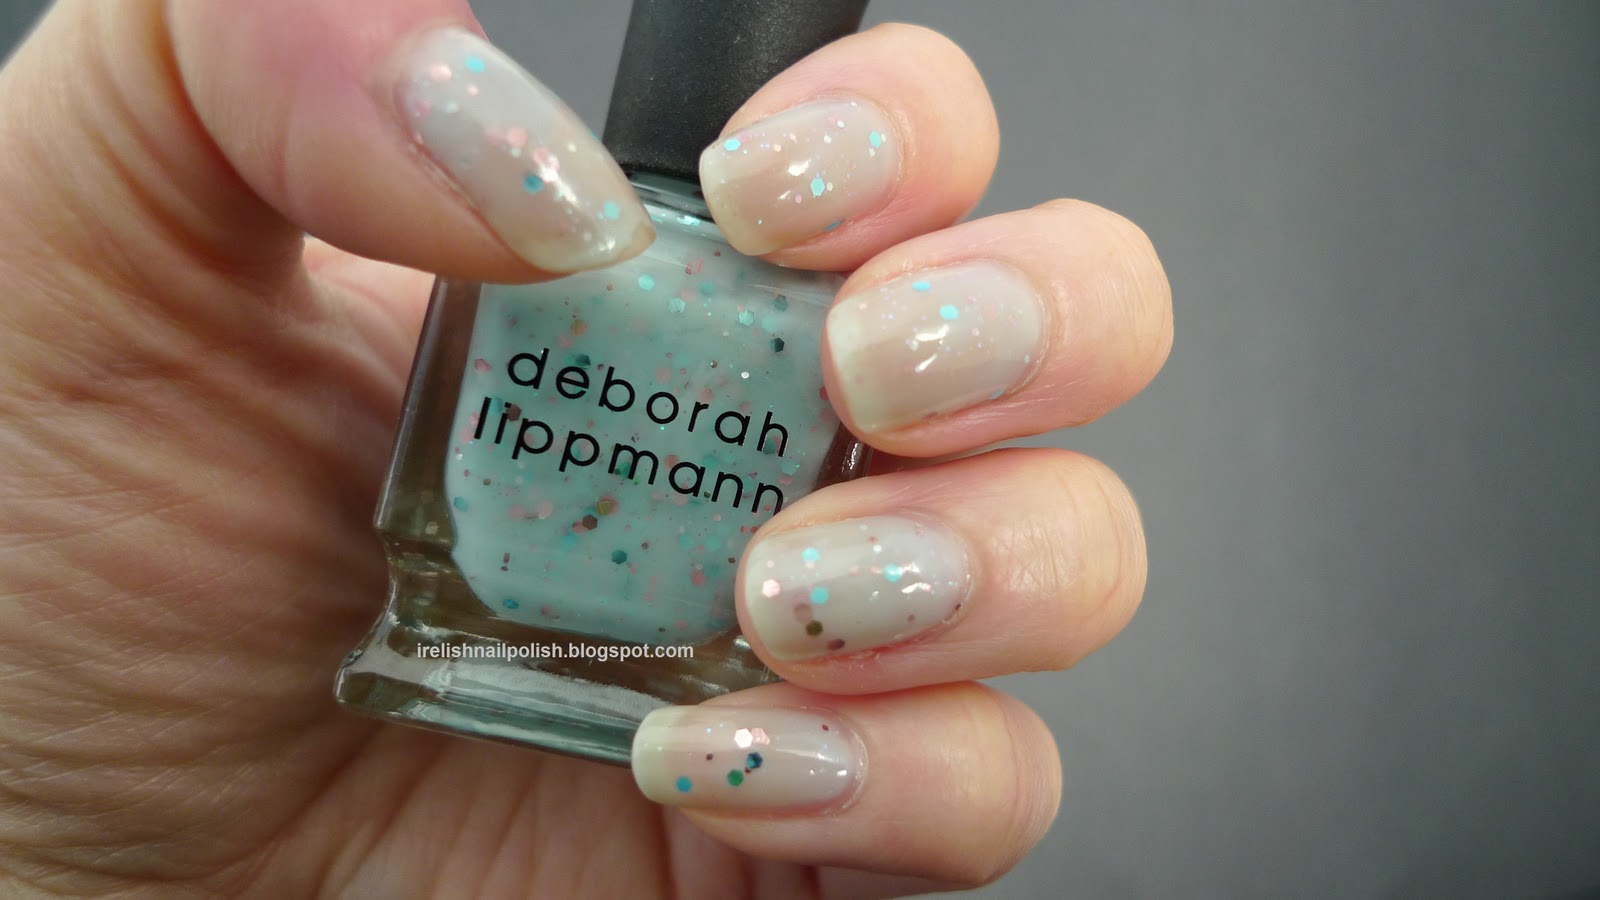 I Relish Nail Polish!: Deborah Lippmann - Glitter in the Air